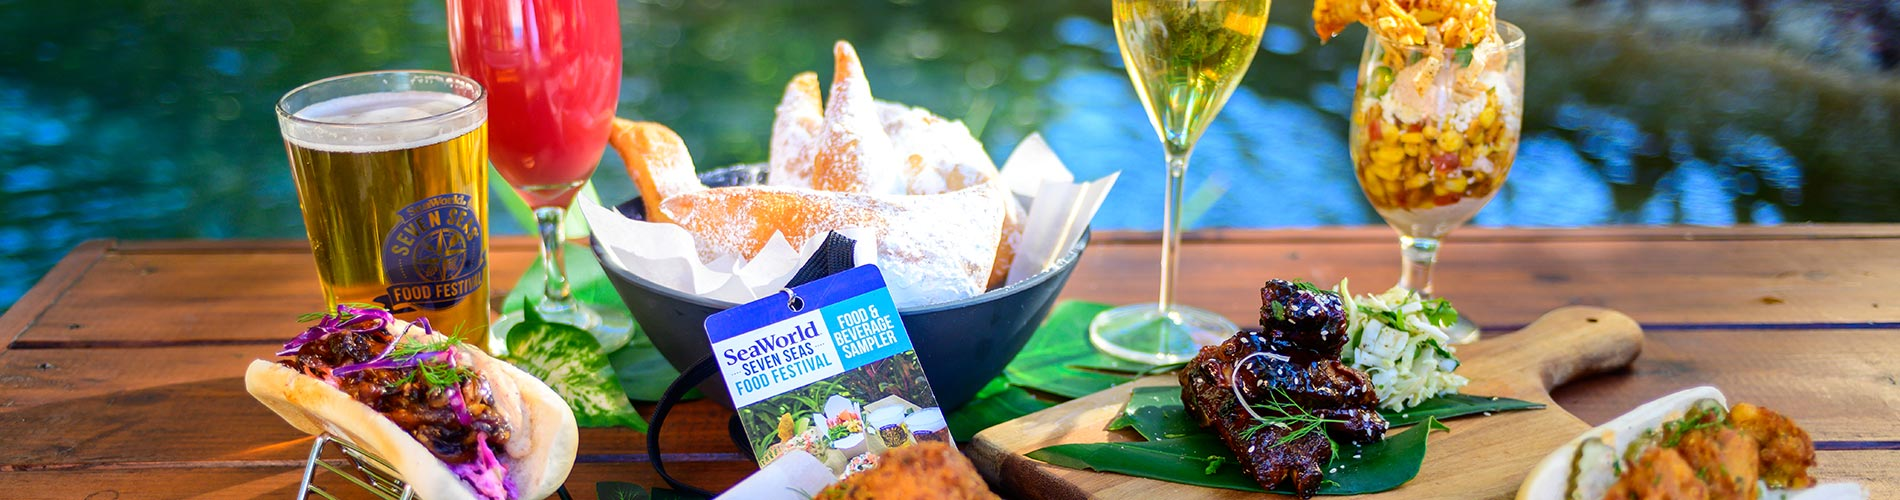 Food and beverage samples available during SeaWorld Seven Seas Craft Beer and Food Festival